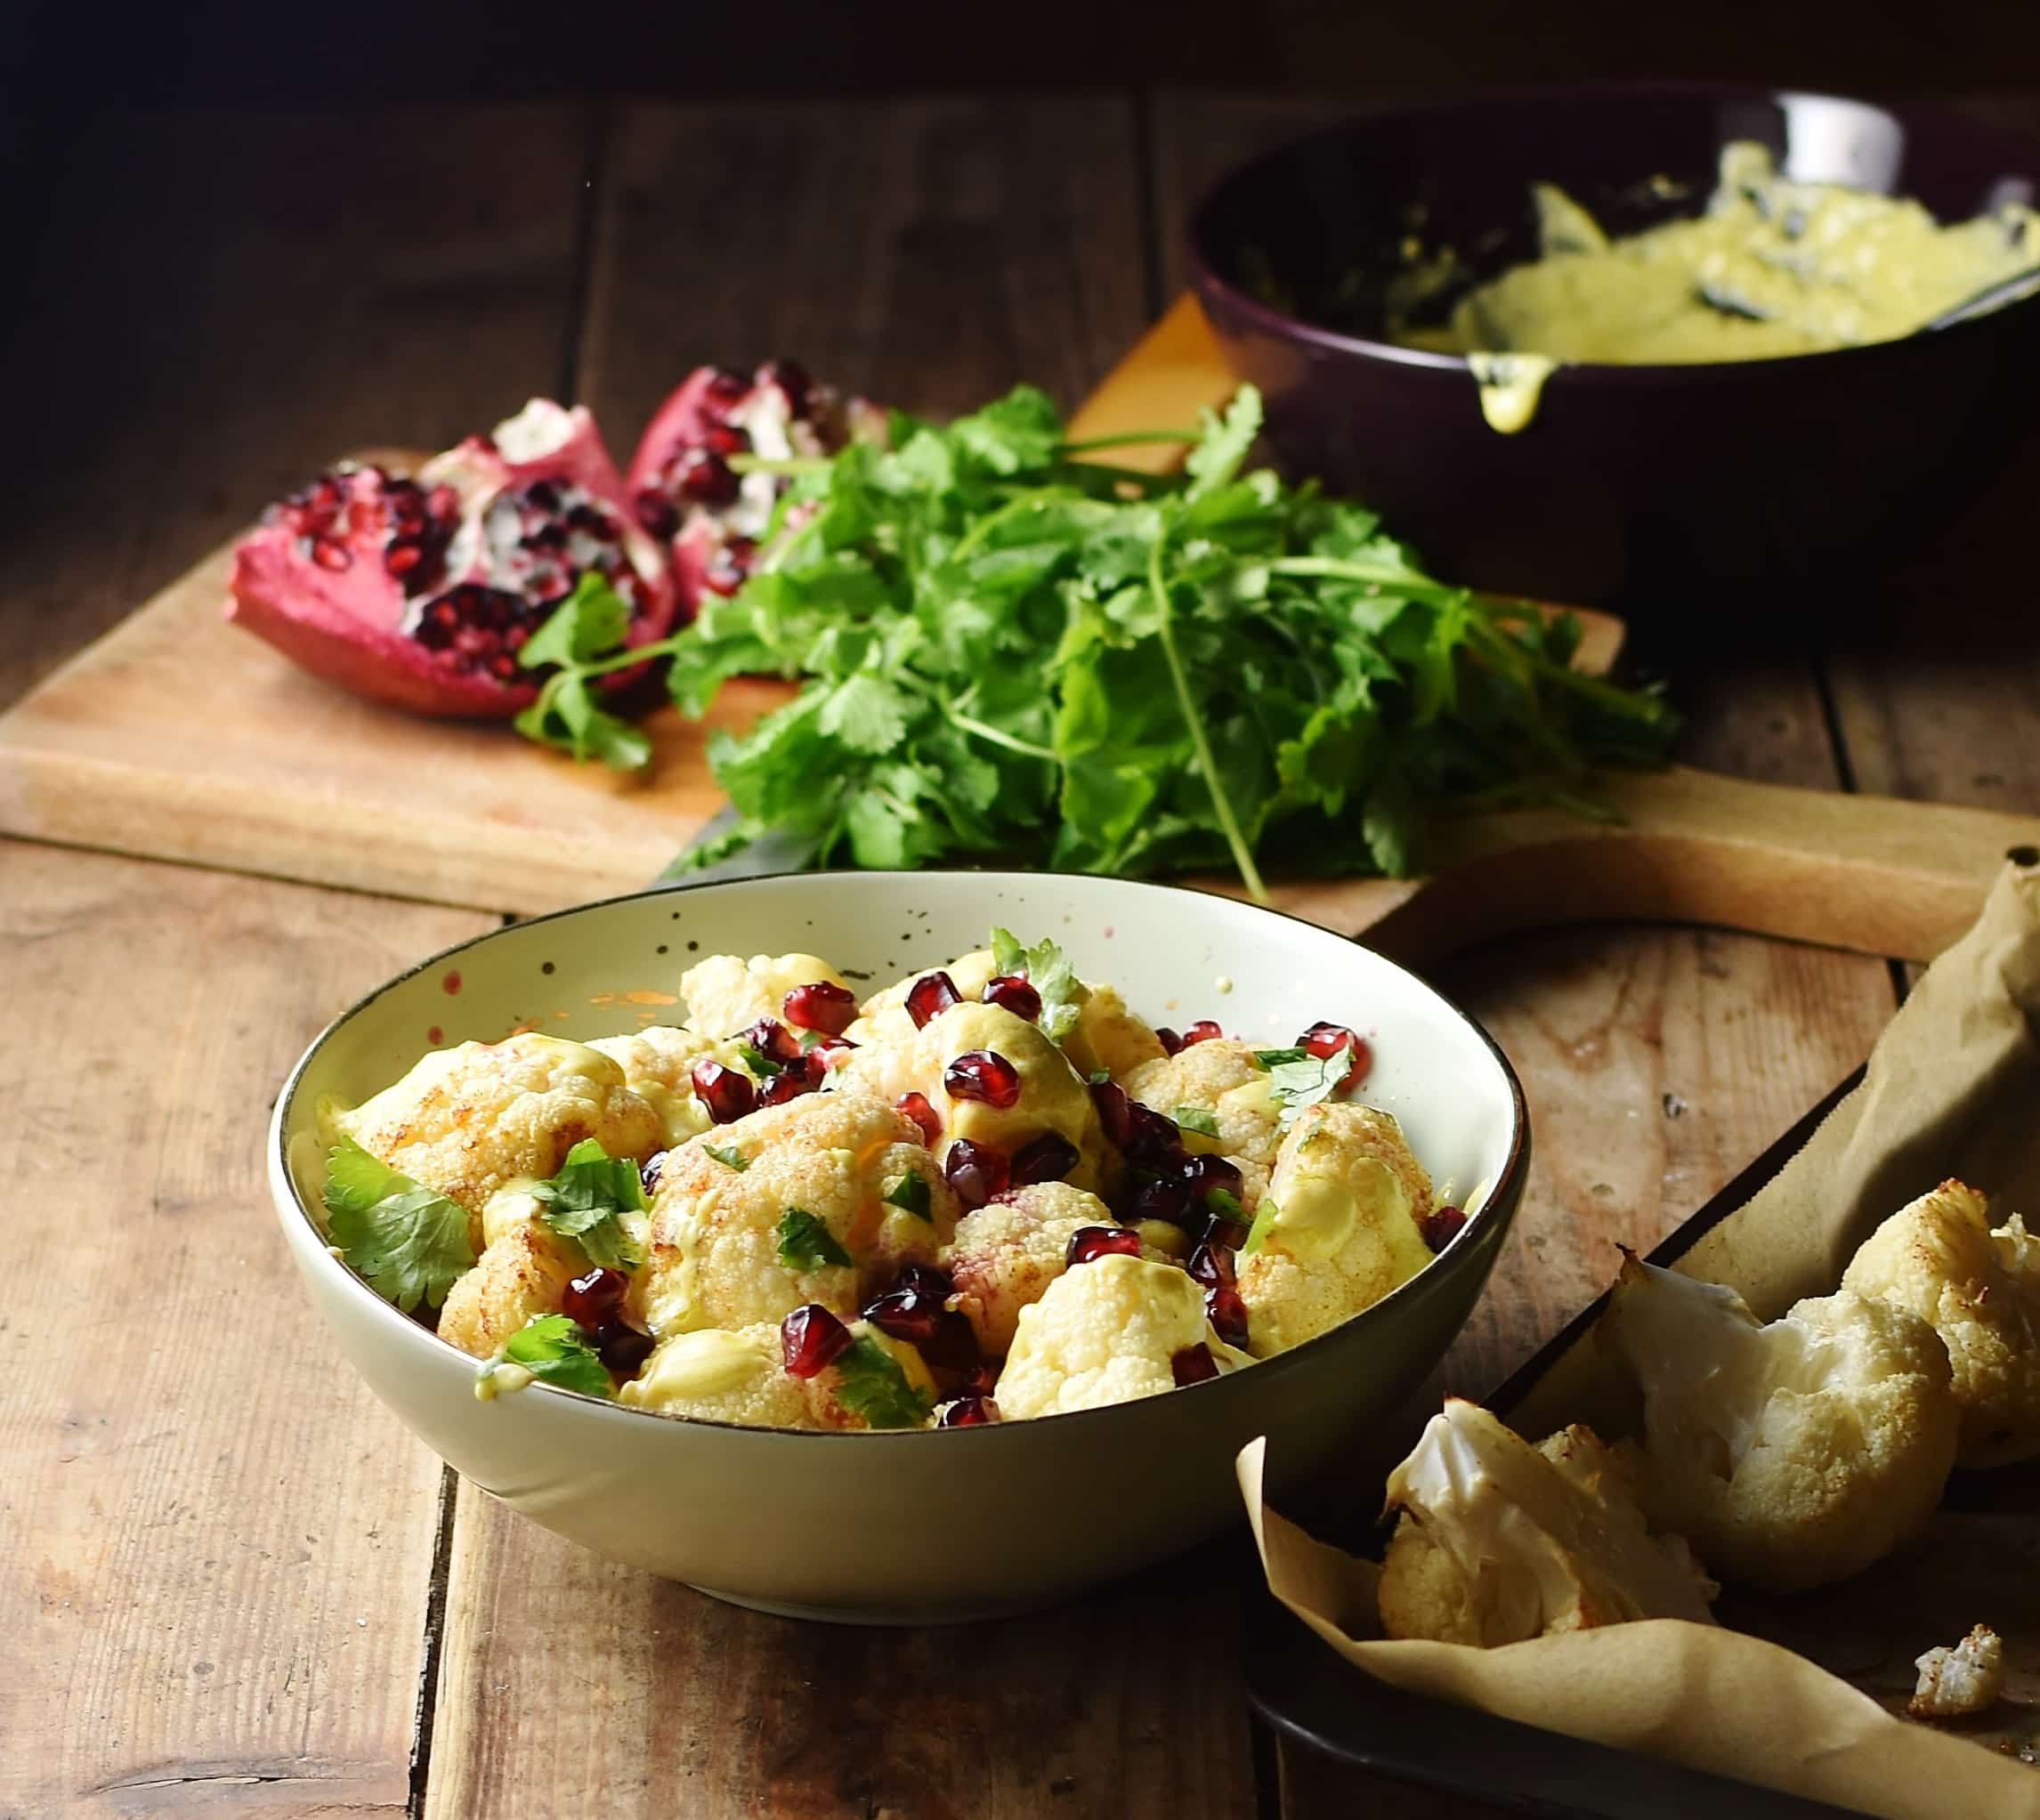 Side view of cauliflower salad with pomegranate seeds in yellow bowl with roasted cauliflower to the right, fresh herbs, pomegranate and creamy dressing in bowl in background.